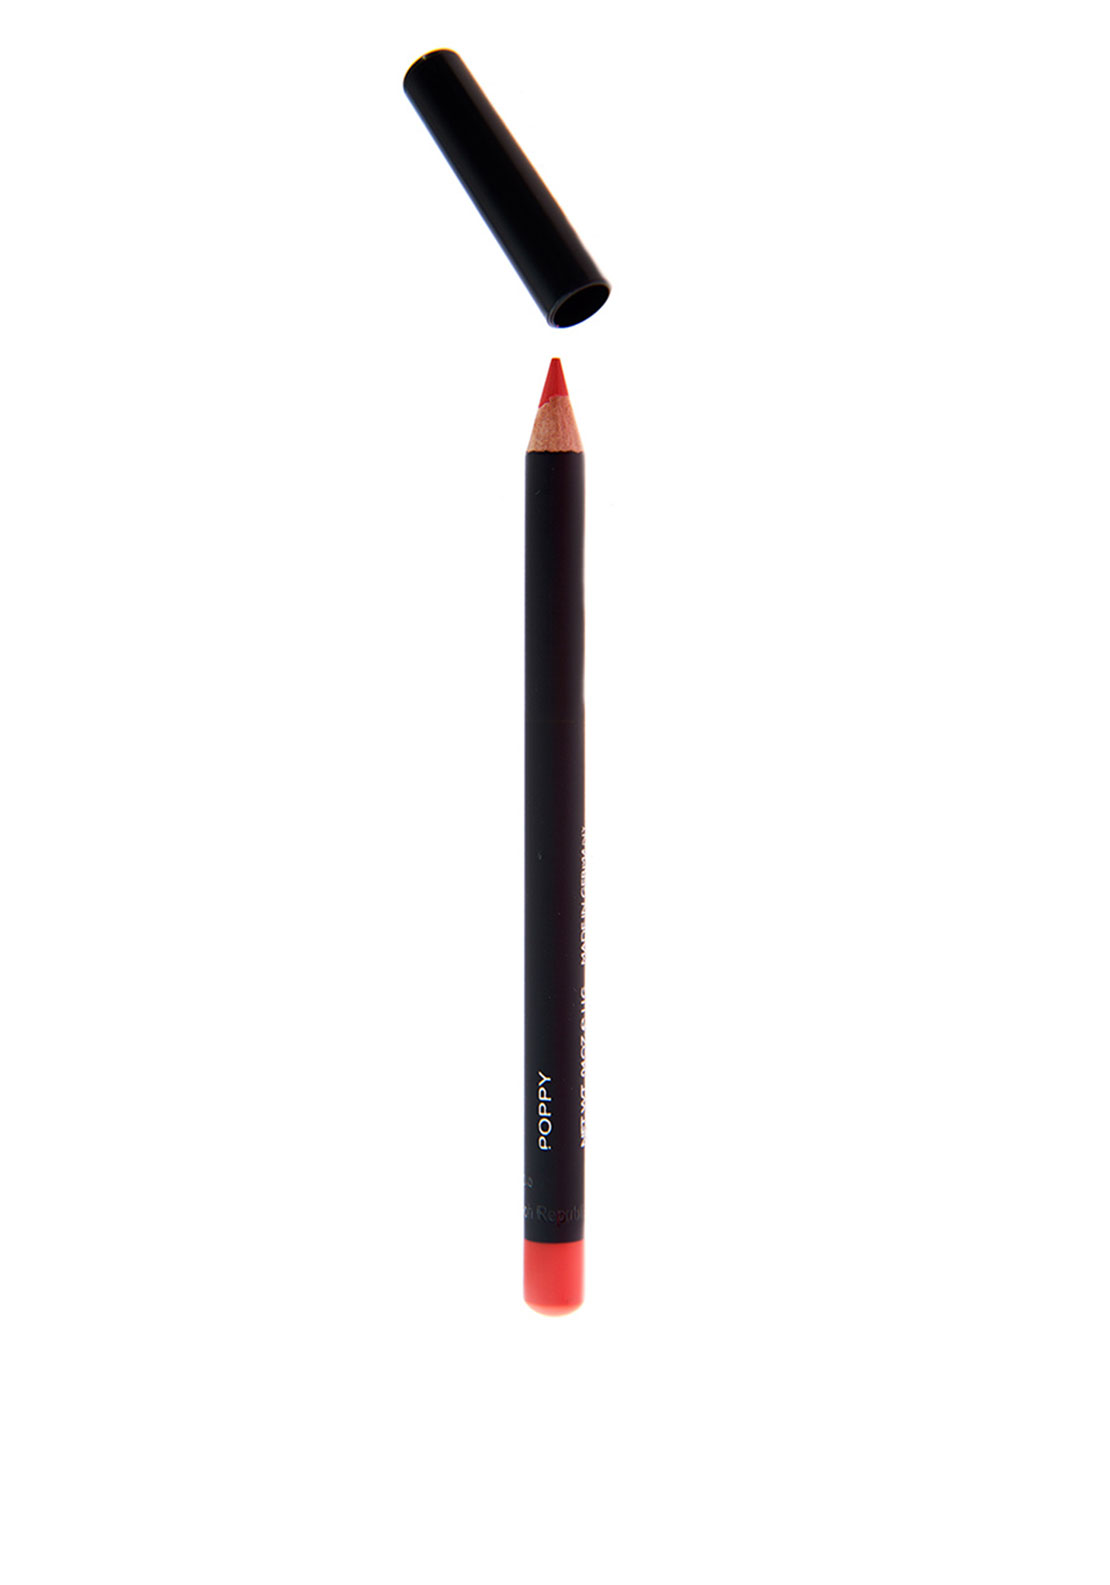 Susan McCann String of Diamonds by Lynda Strain Lip Pencil, Poppy